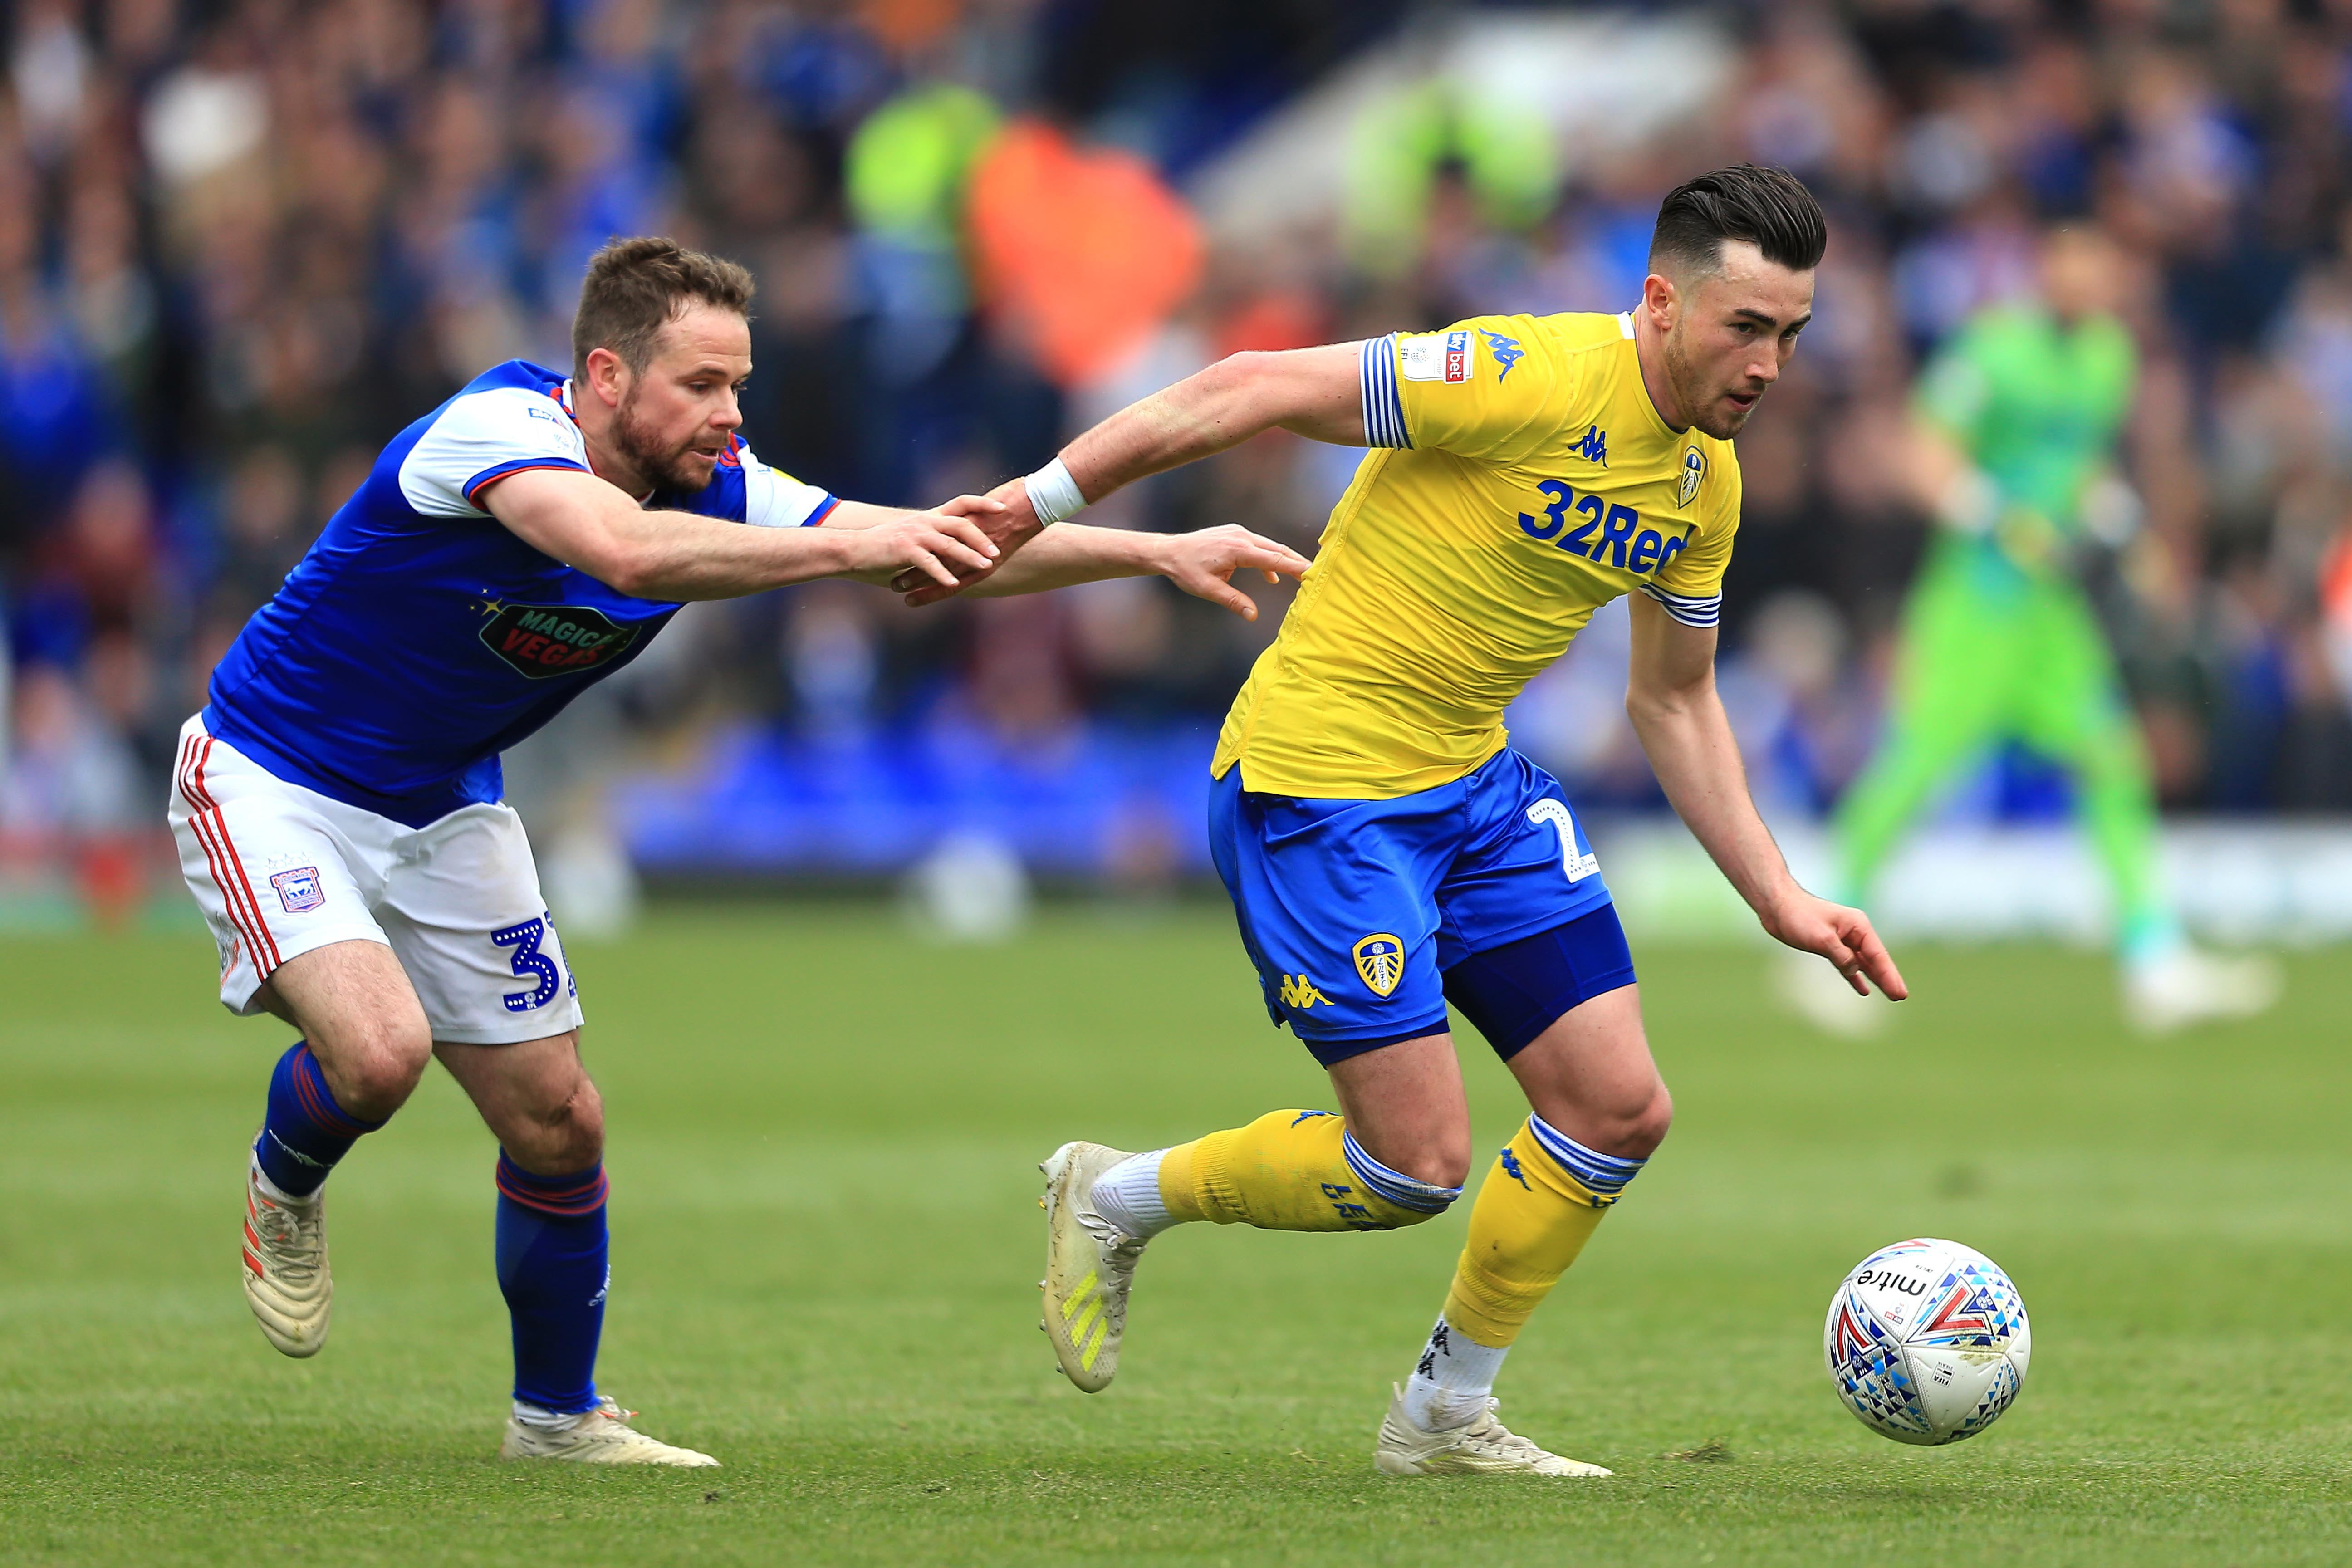 Morning Leeds-in for 26 June: Harrison looks set to go loan from Manchester City to Leeds again